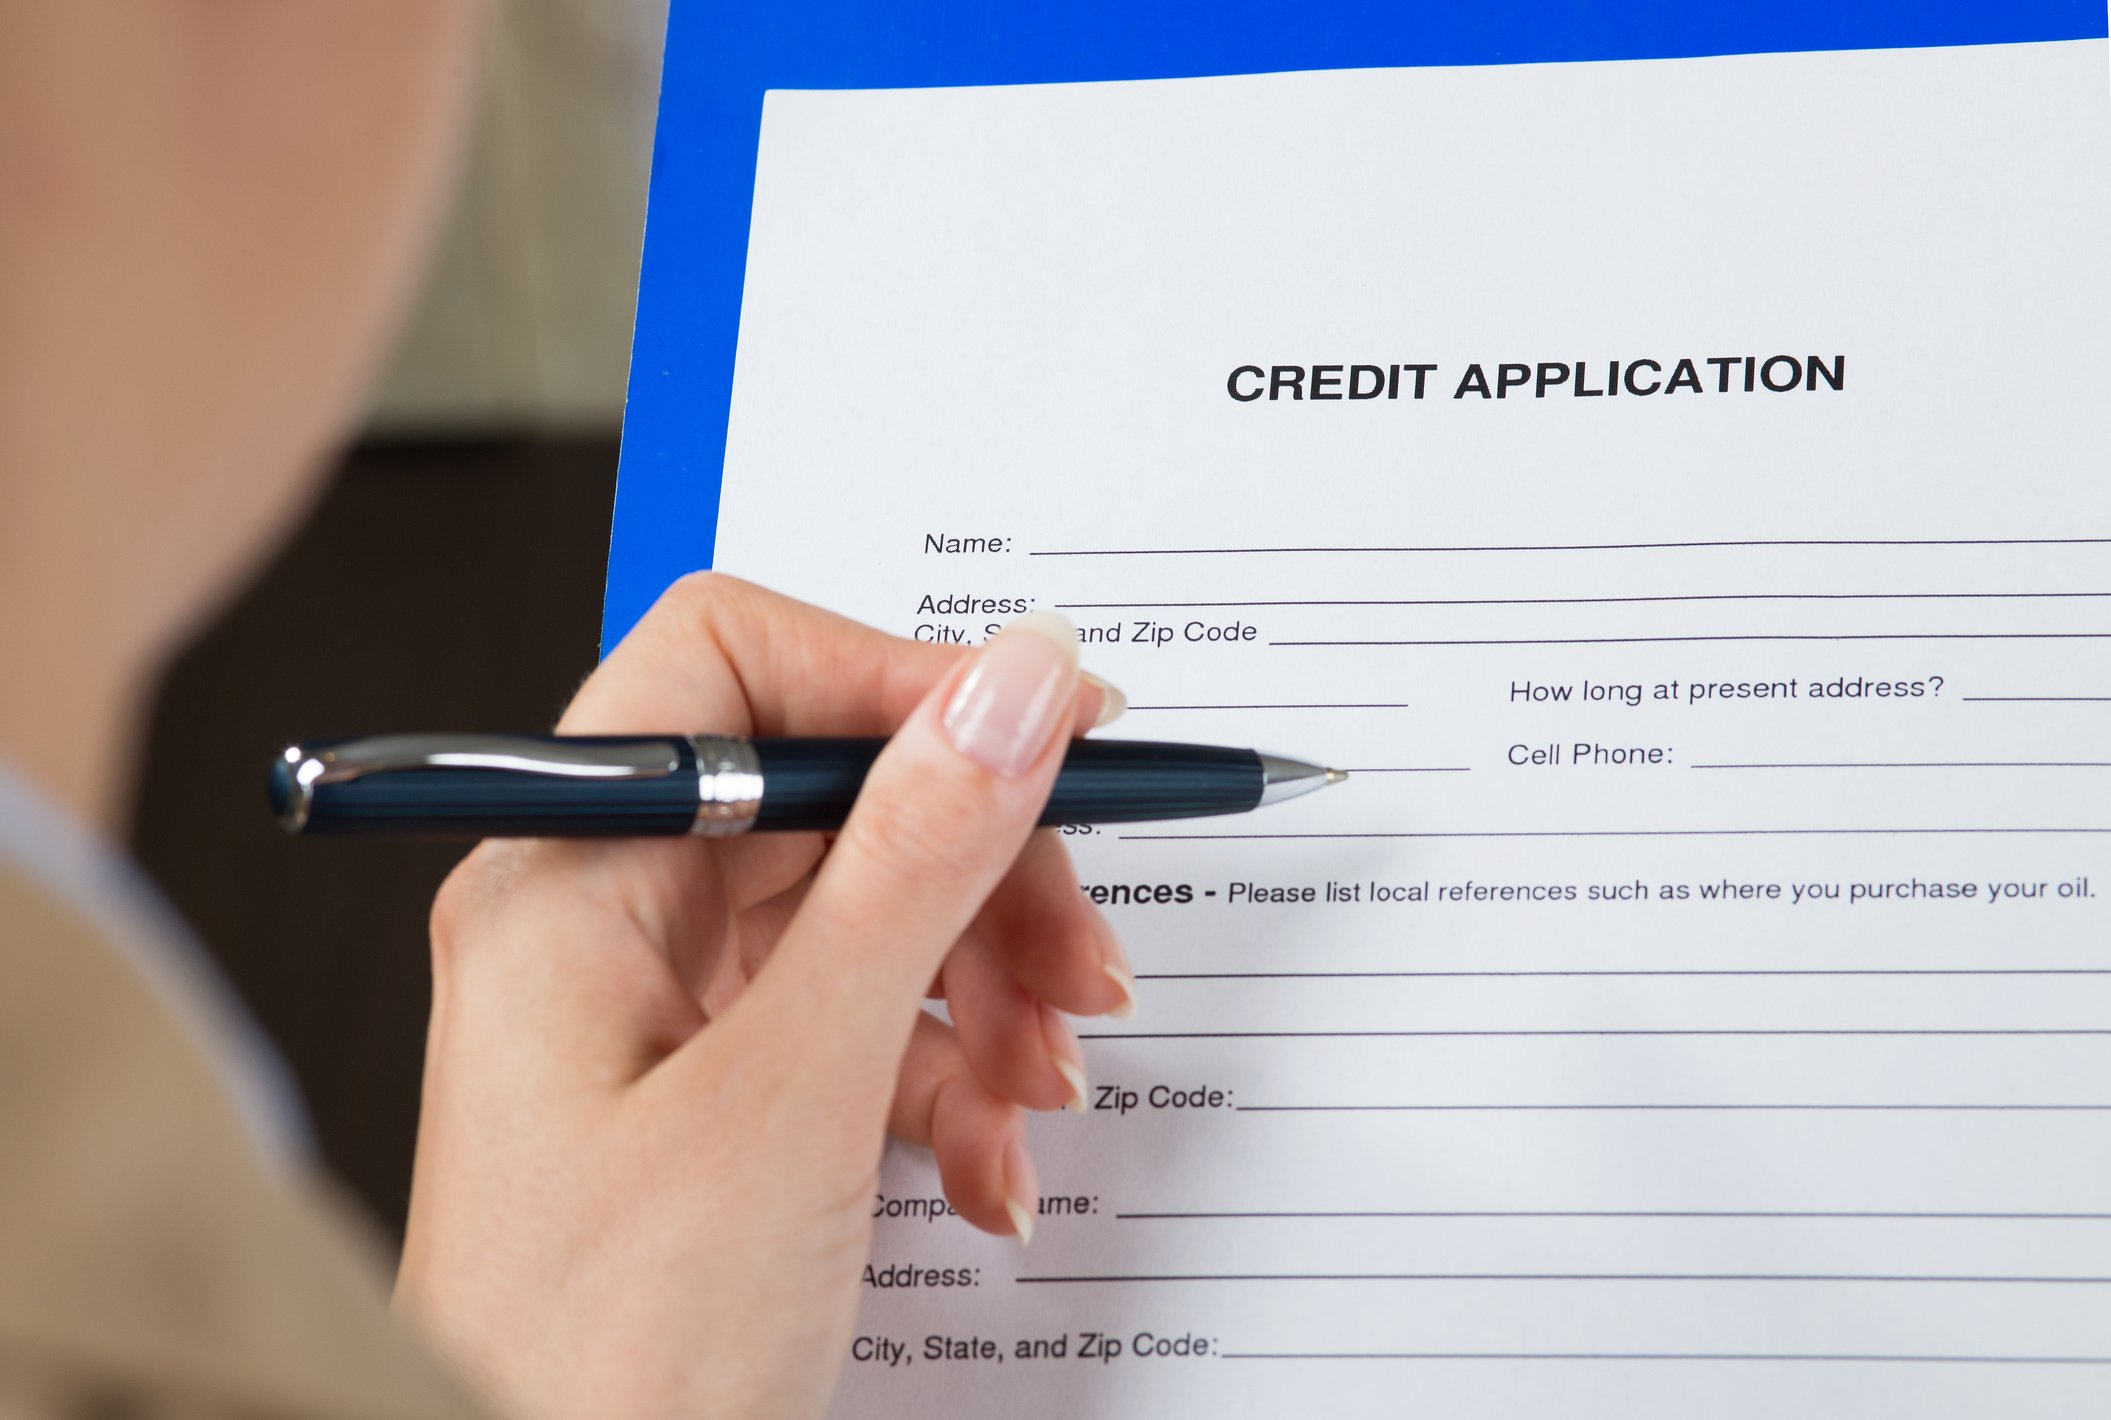 Woman filling out credit application.